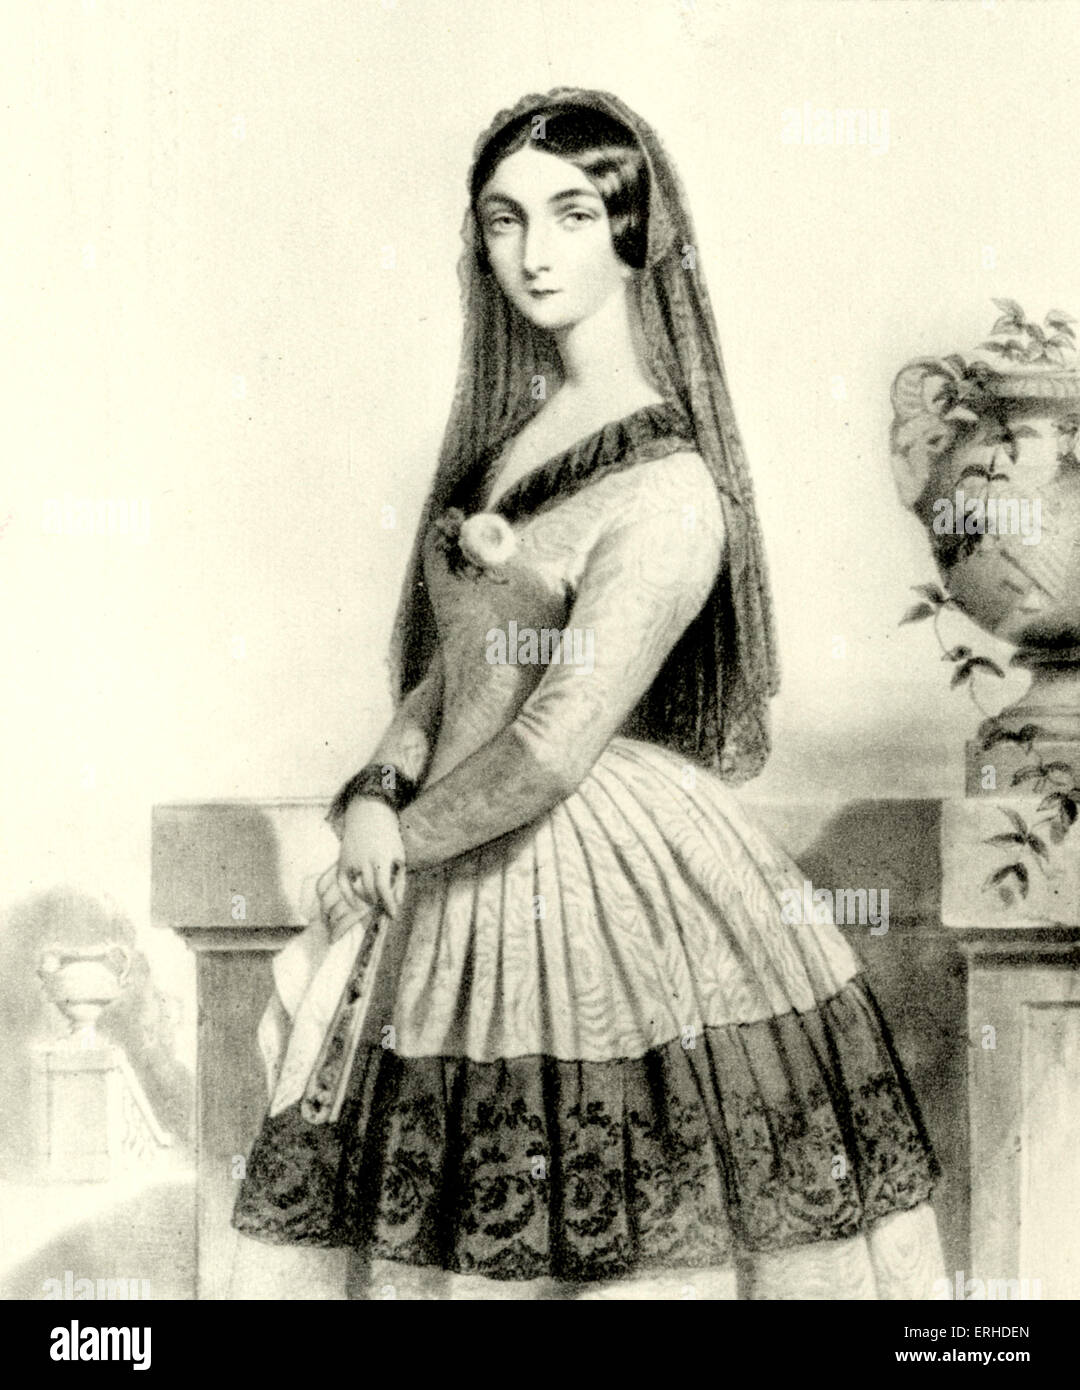 Lola Montes (or Montez). Lithograph by Alophe after a portrait by Dartiguenave. Irish adventurer and dancer (1818 - Stock Image